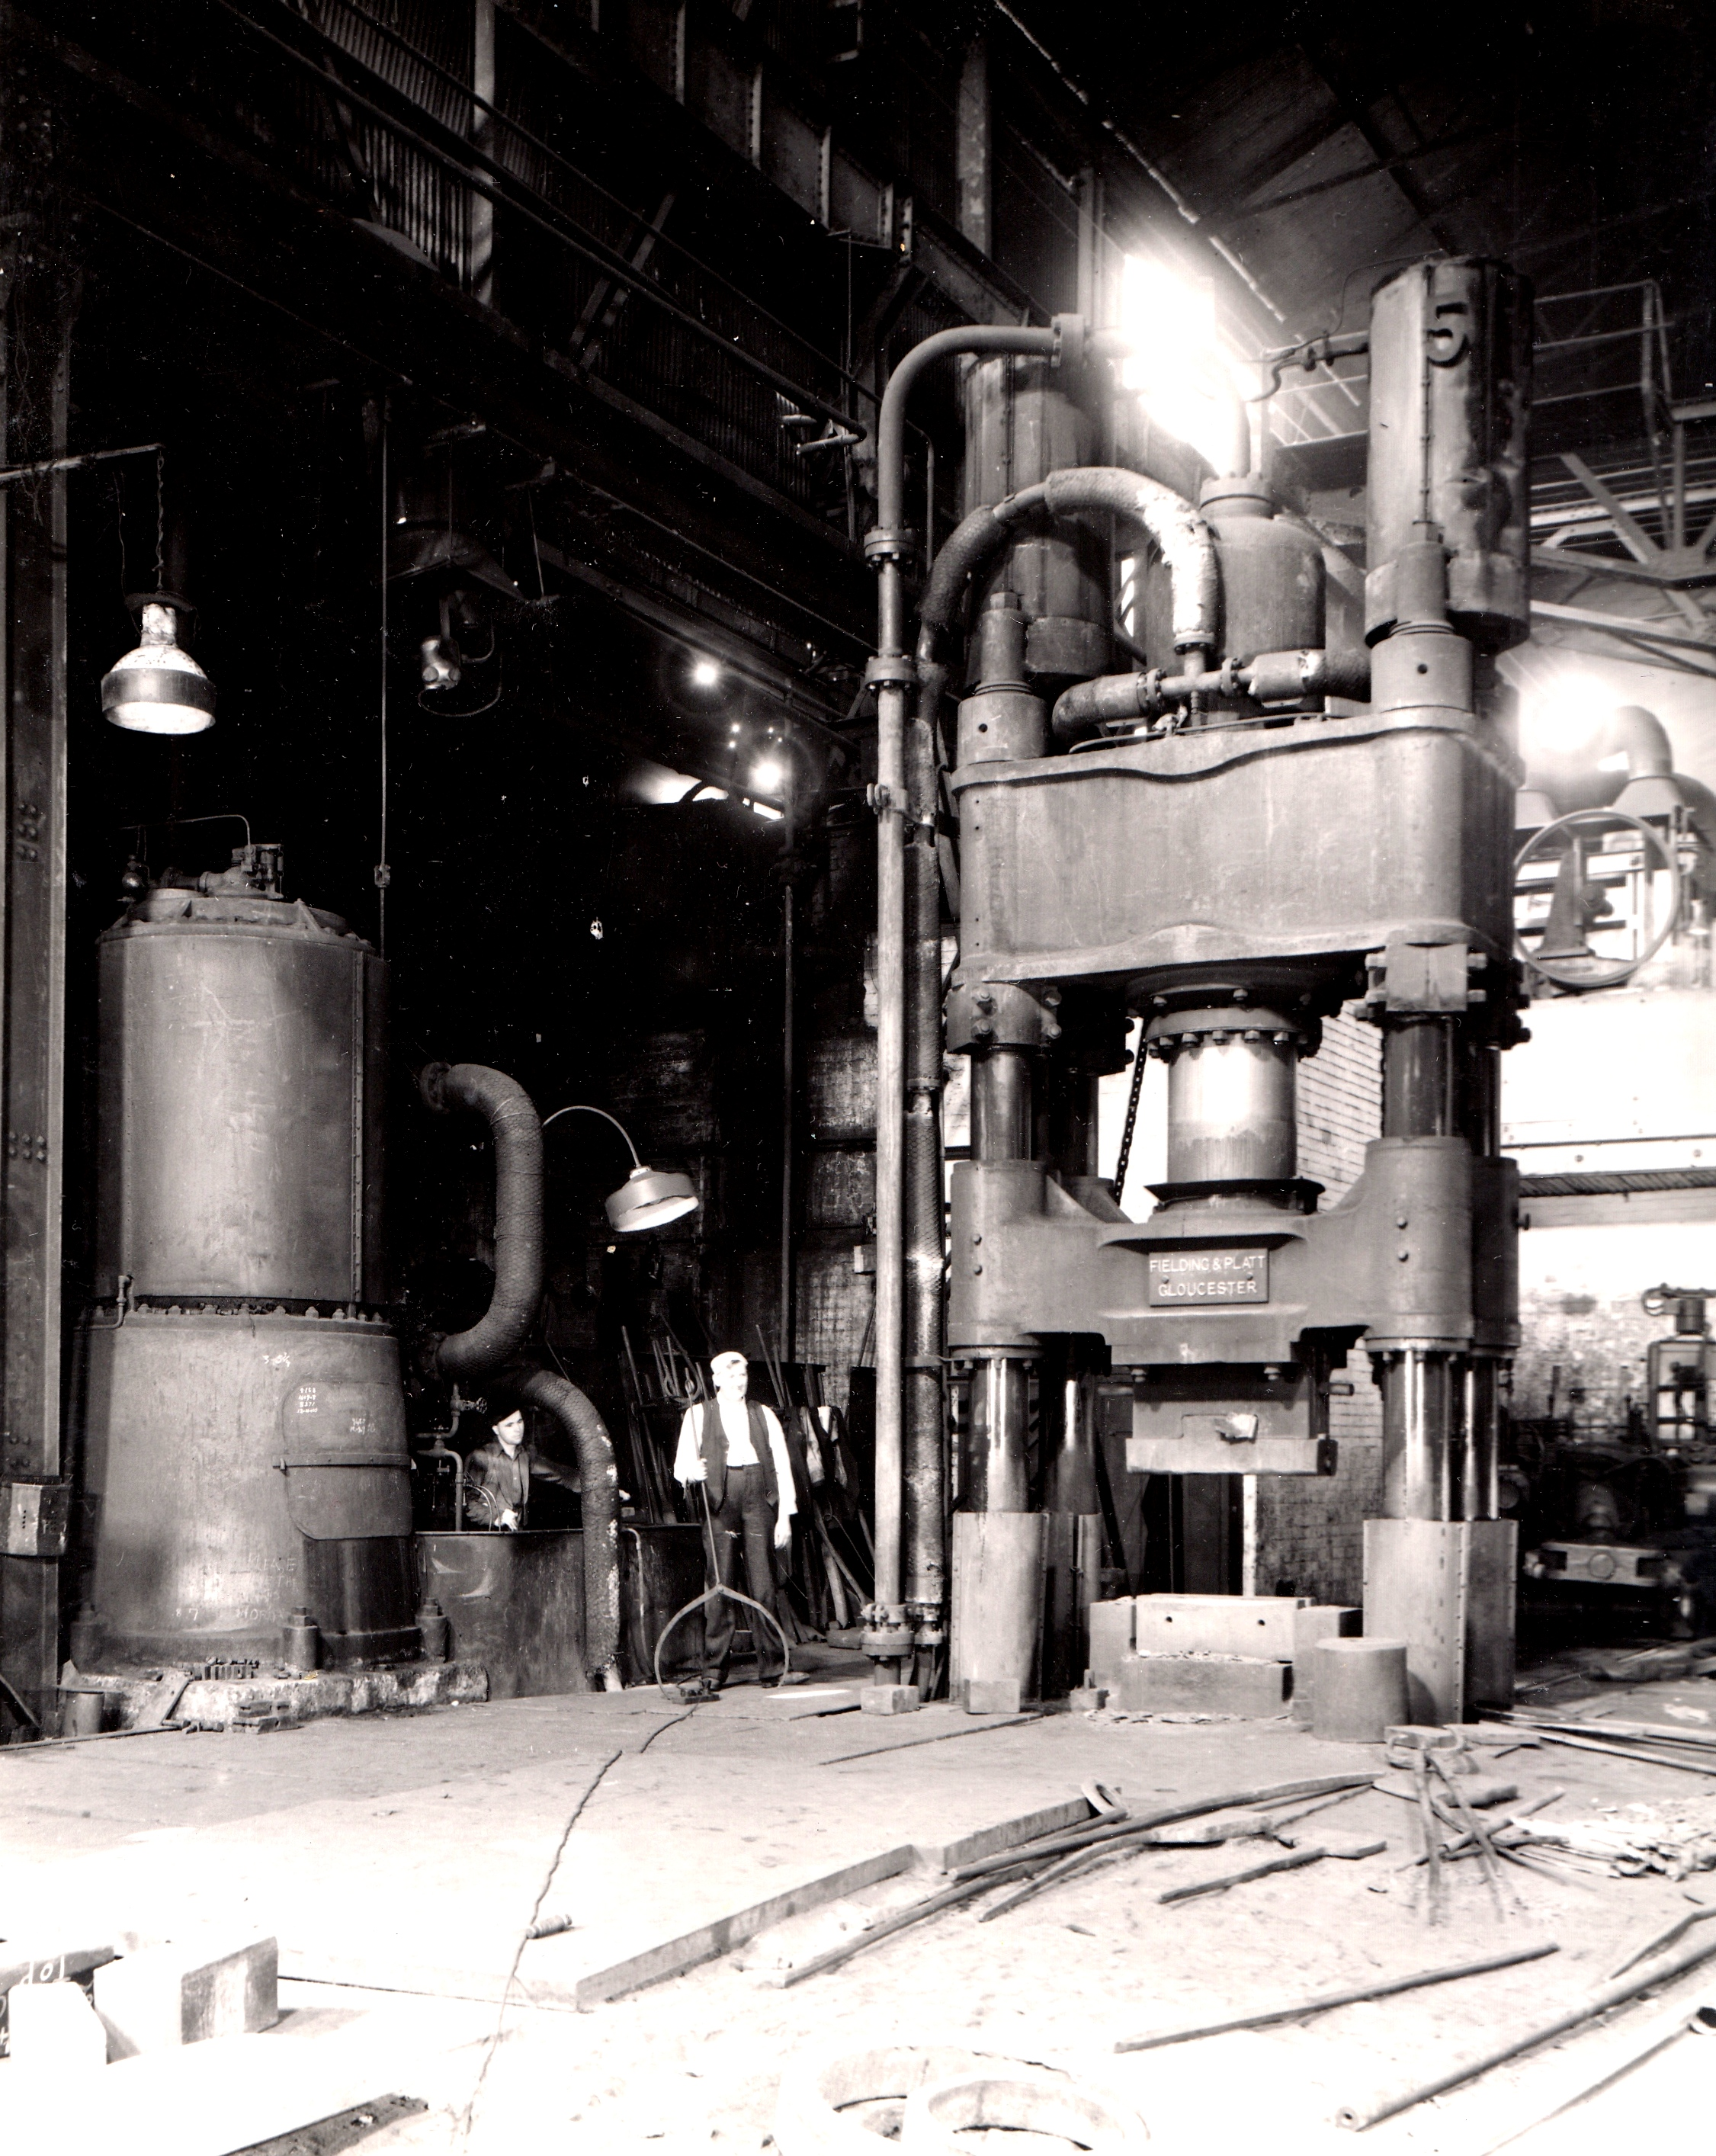 800 ton Forging Press with steam driver, view taken on site